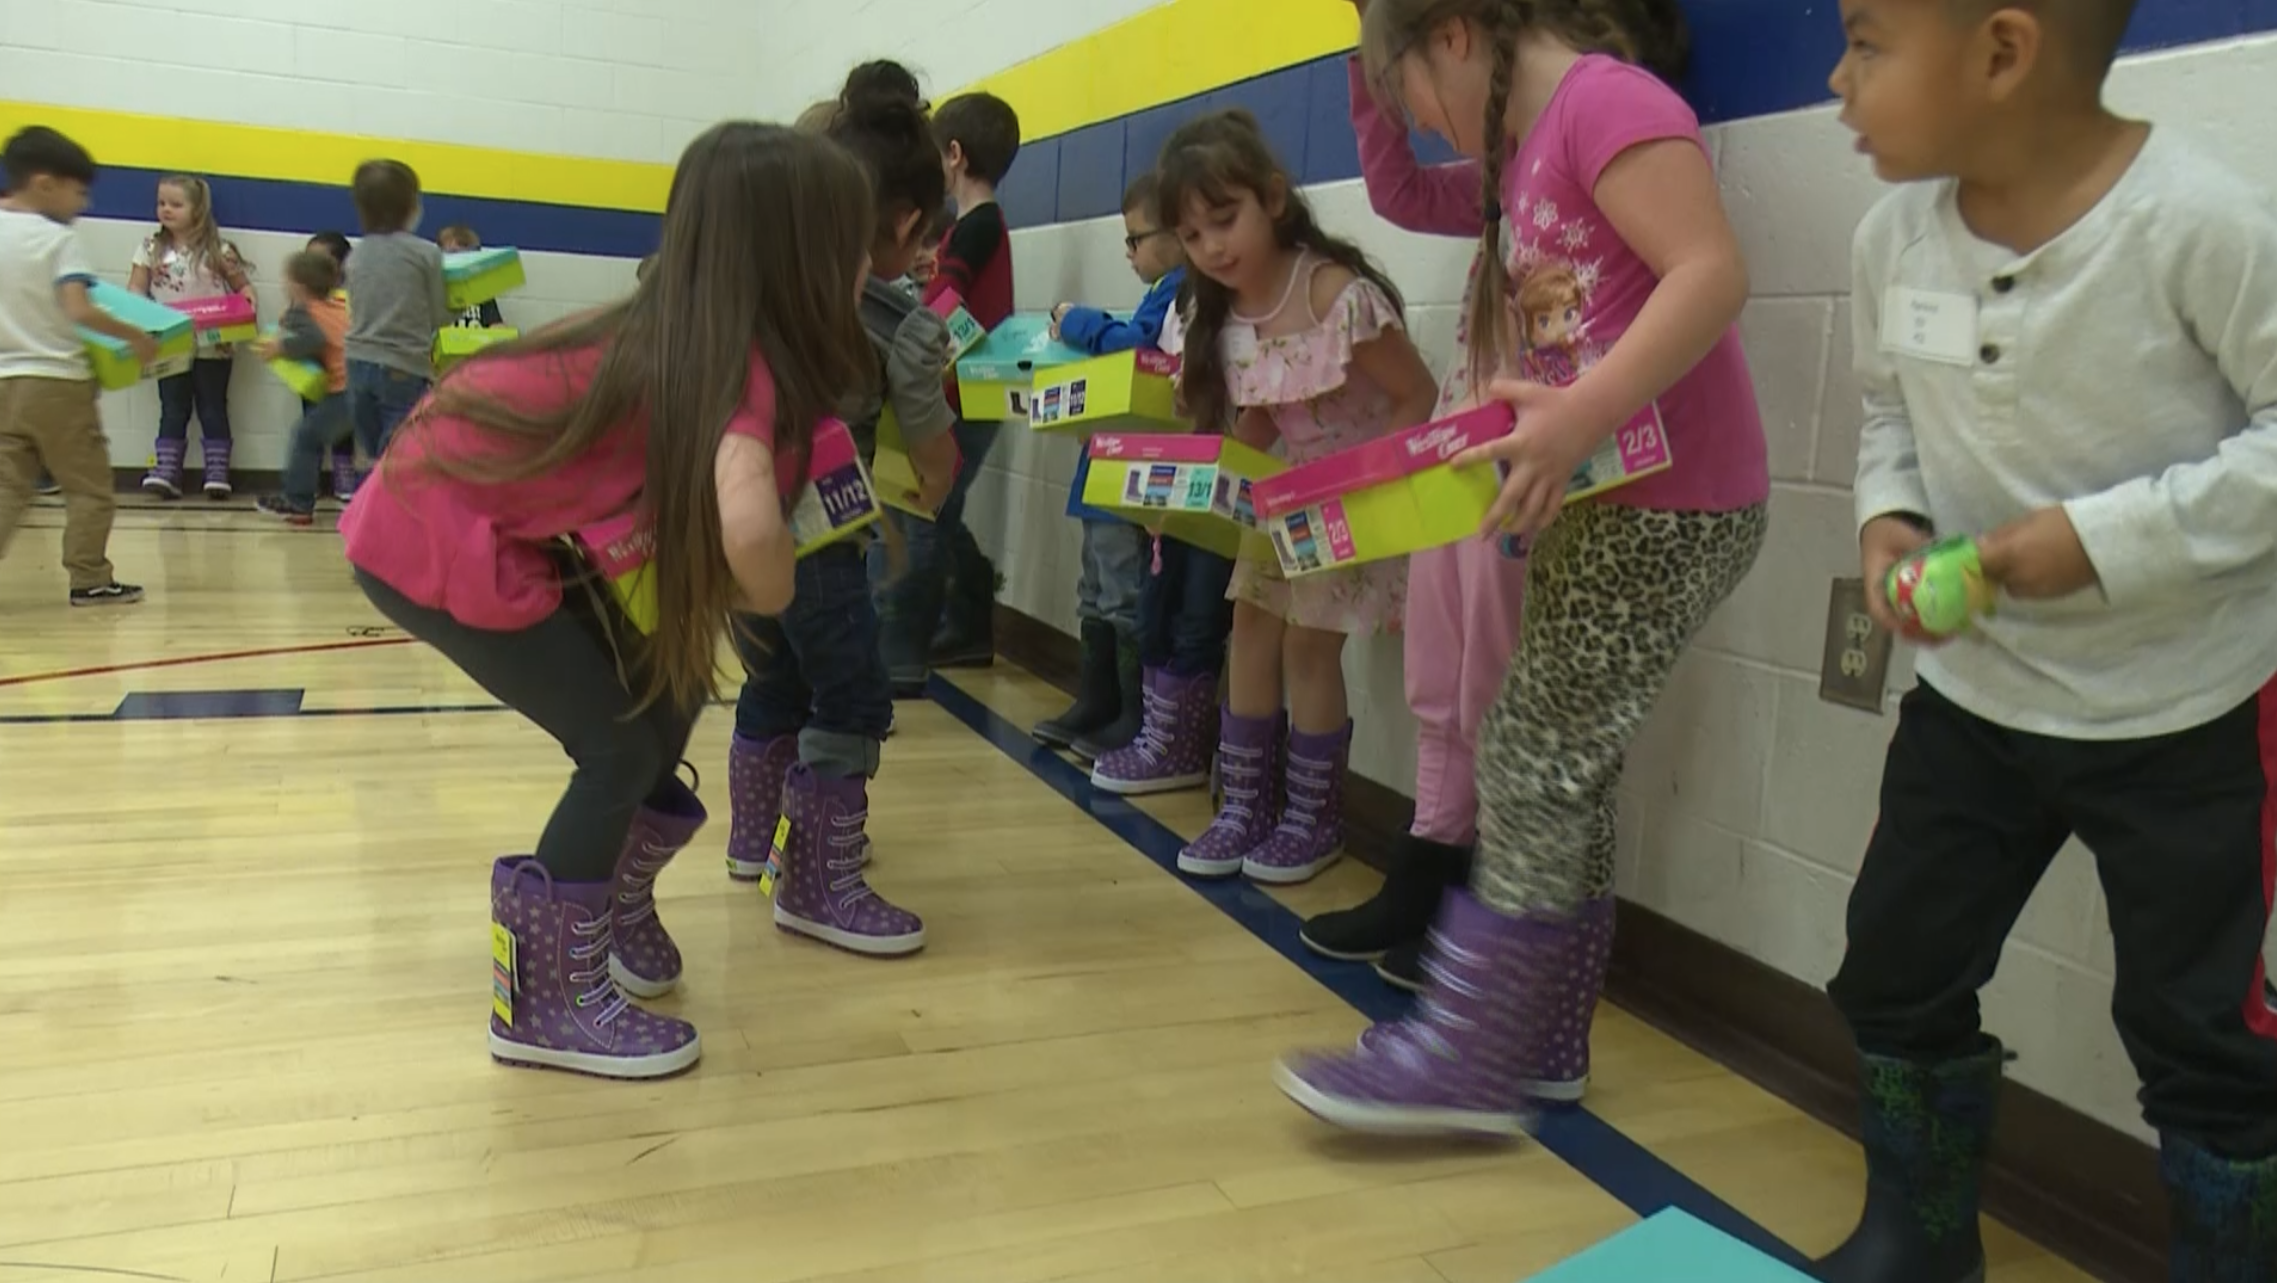 'Give Cold Feet a Boot' campaign provides 300 winter boots for students